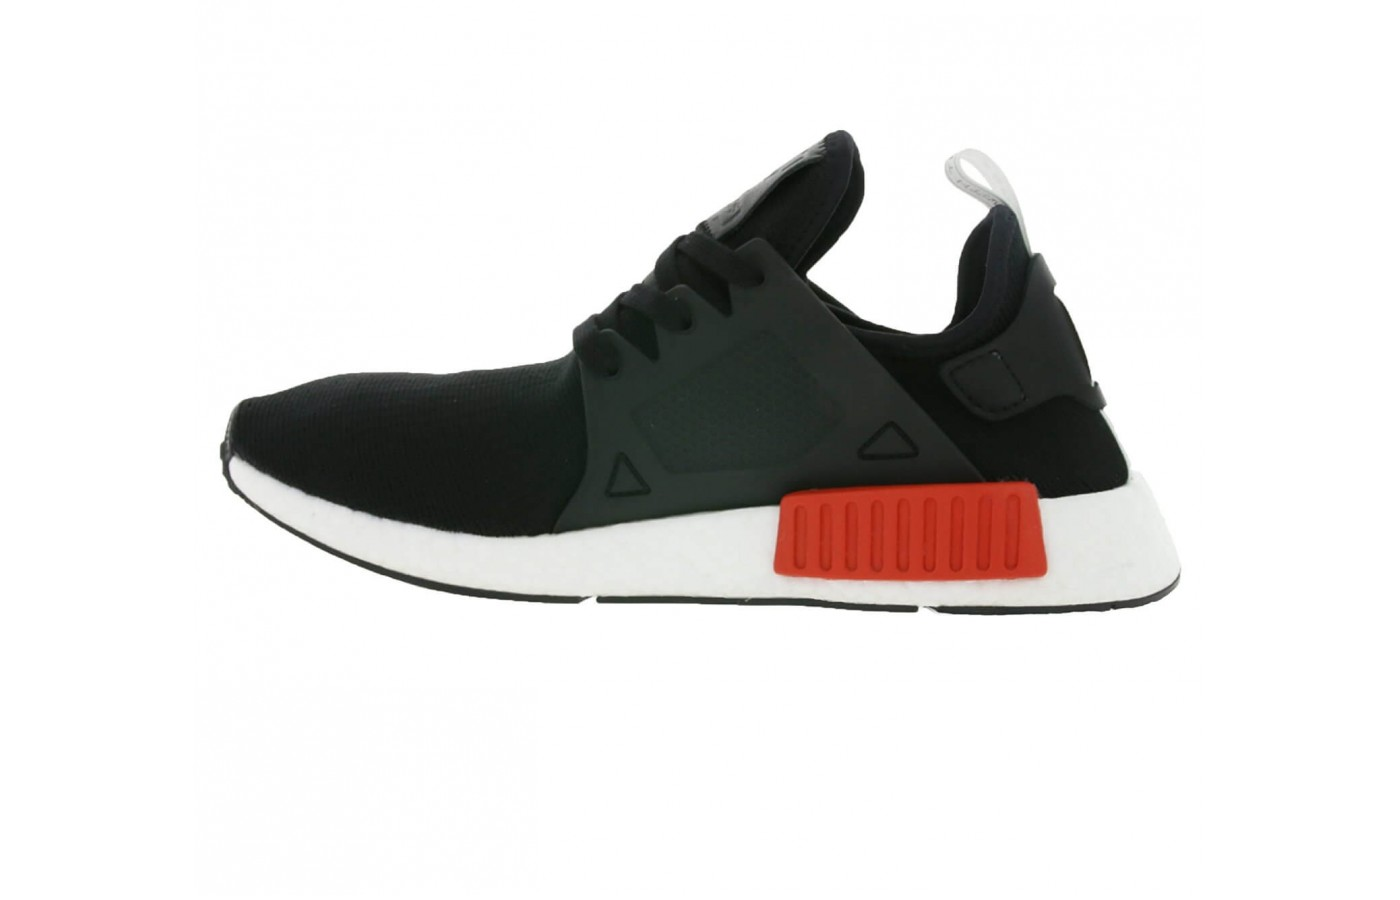 With so many different color schemes available, the Adidas NMD XR1 is a favorite among collectors.